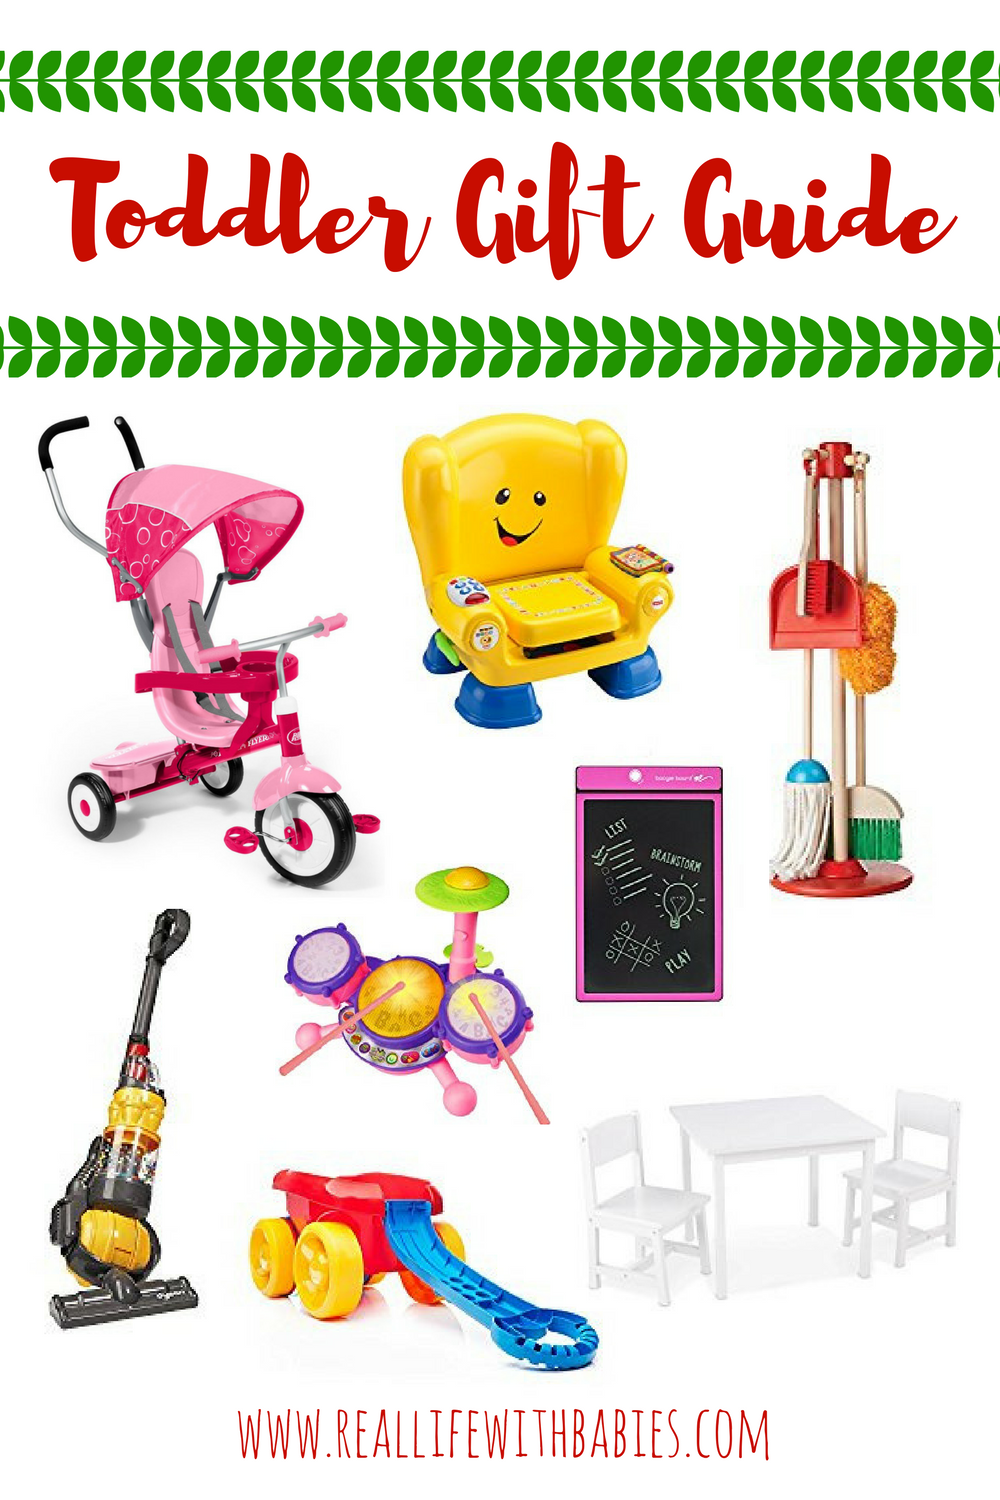 Are any of you last minute Christmas shoppers like me? Have a toddler to buy for? Check out this Toddler Gift Guide with quick shipping from Amazon!